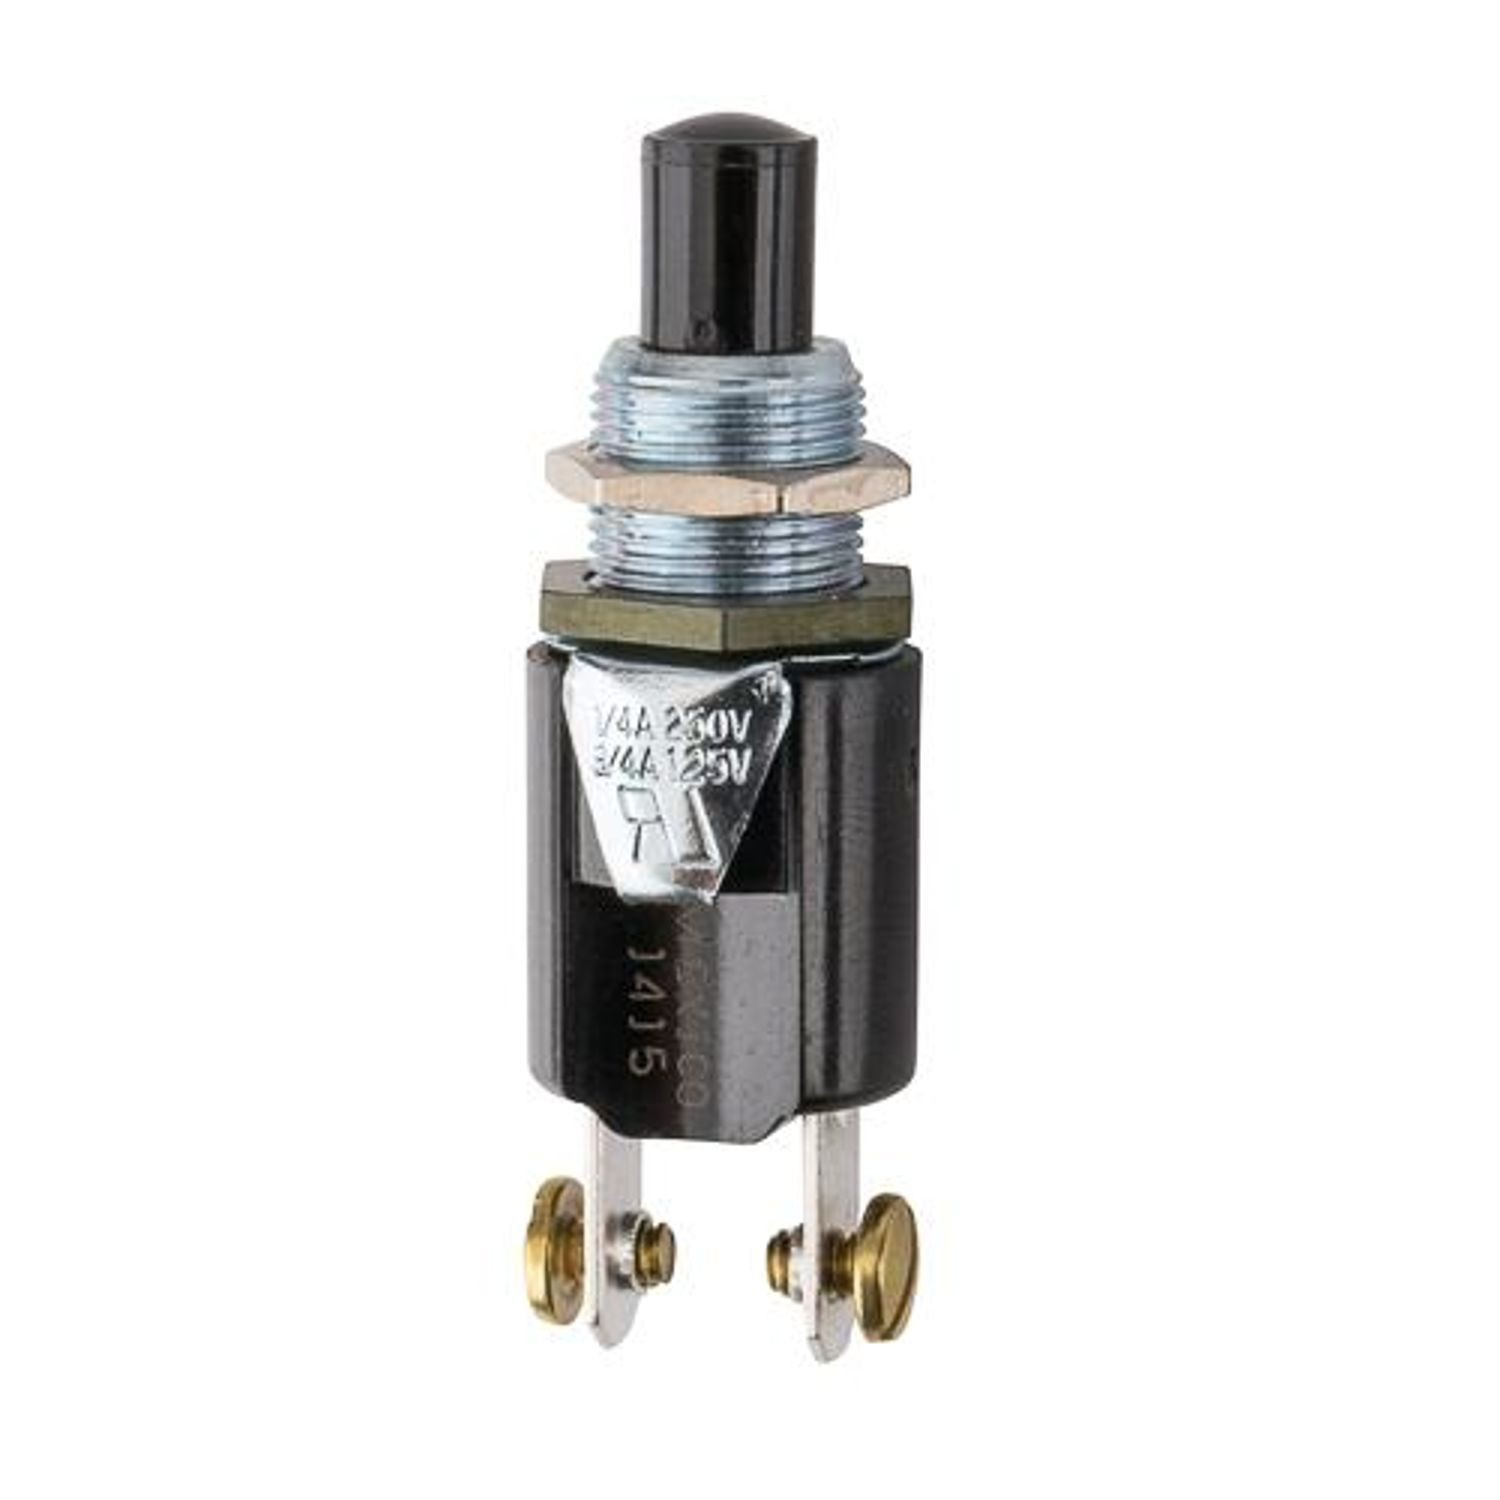 Nsi Industries Pushbutton Switch On Off Push Button Spst 1no Switches Momentary 125 To 250 Vac